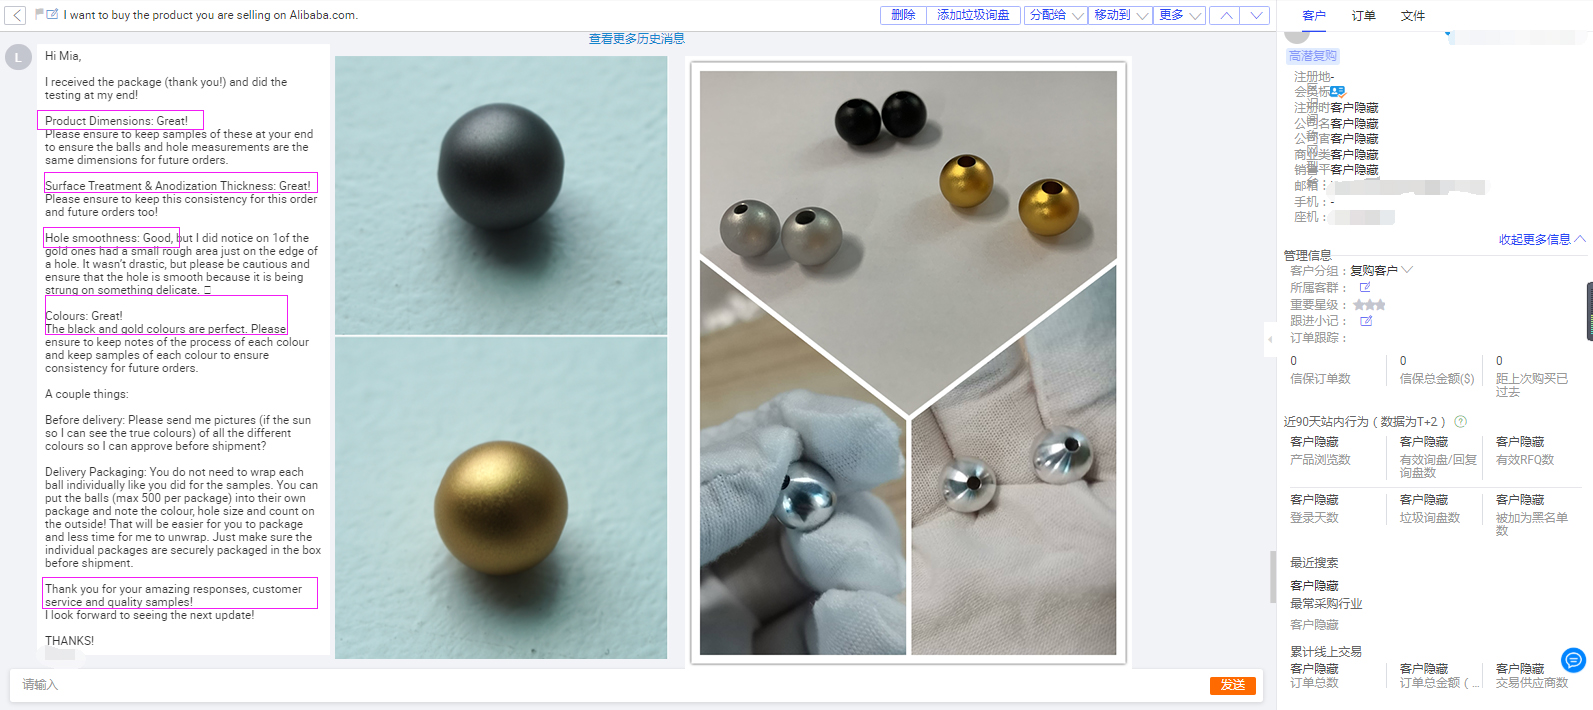 The aluminum ball feedback from Canada customer